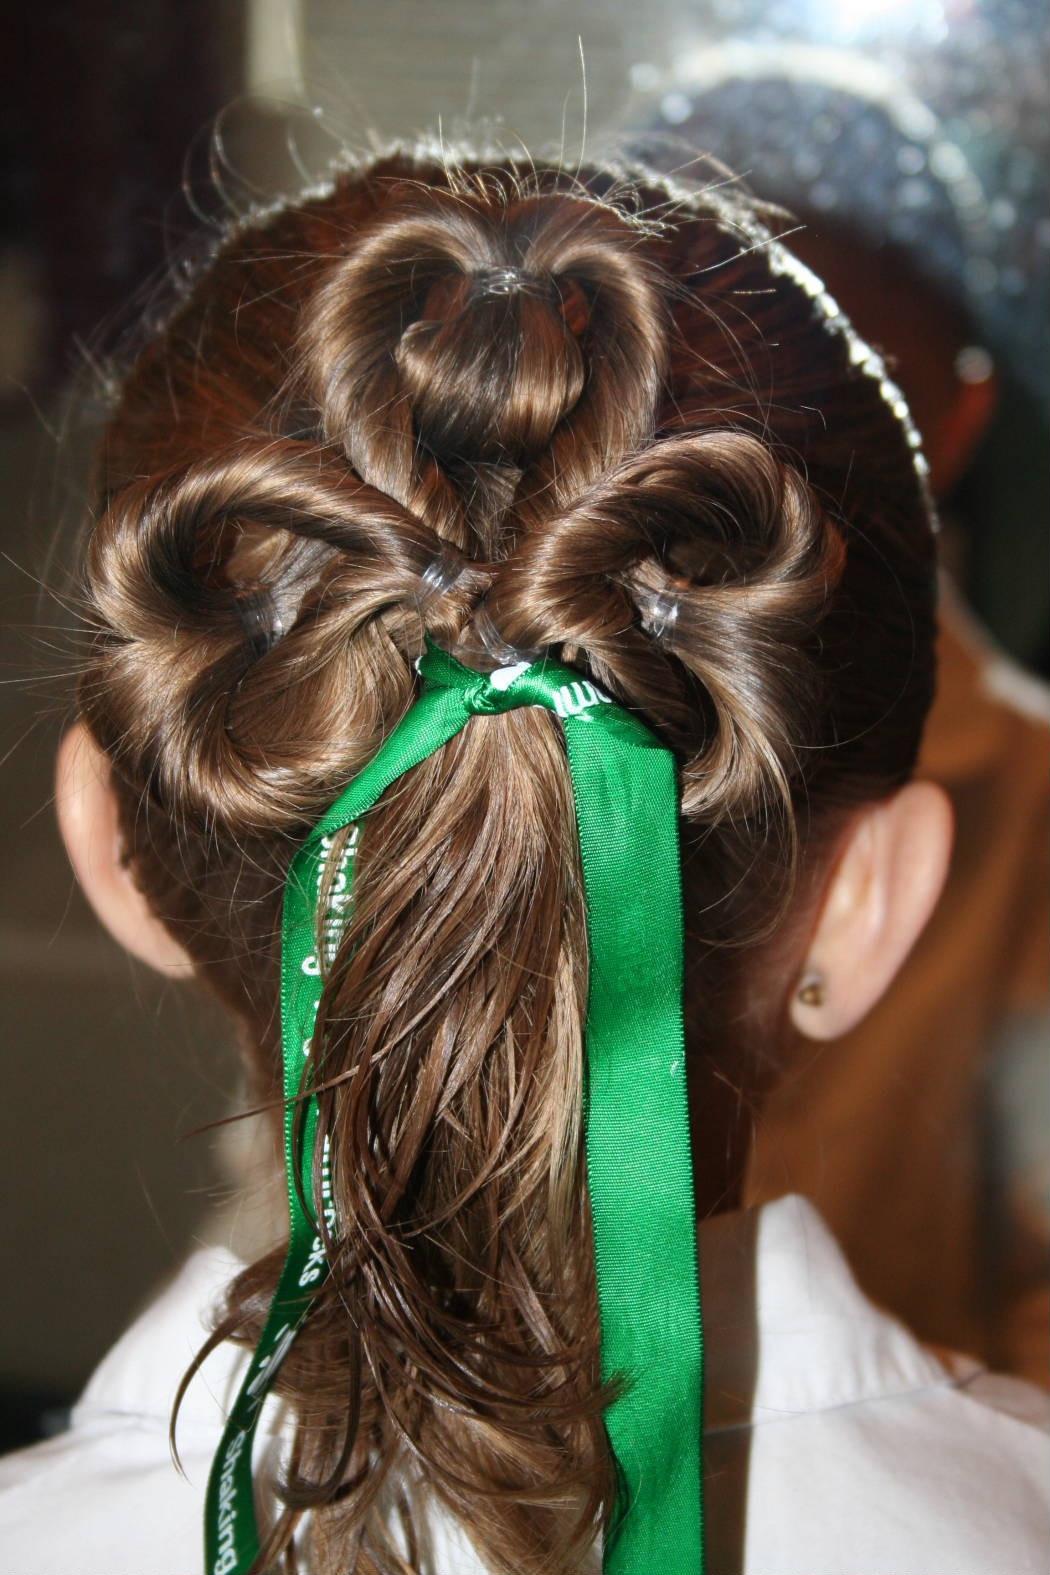 Best ideas about Picture Day Hairstyles For Girls . Save or Pin St Patrick s Day Hairstyles Now.